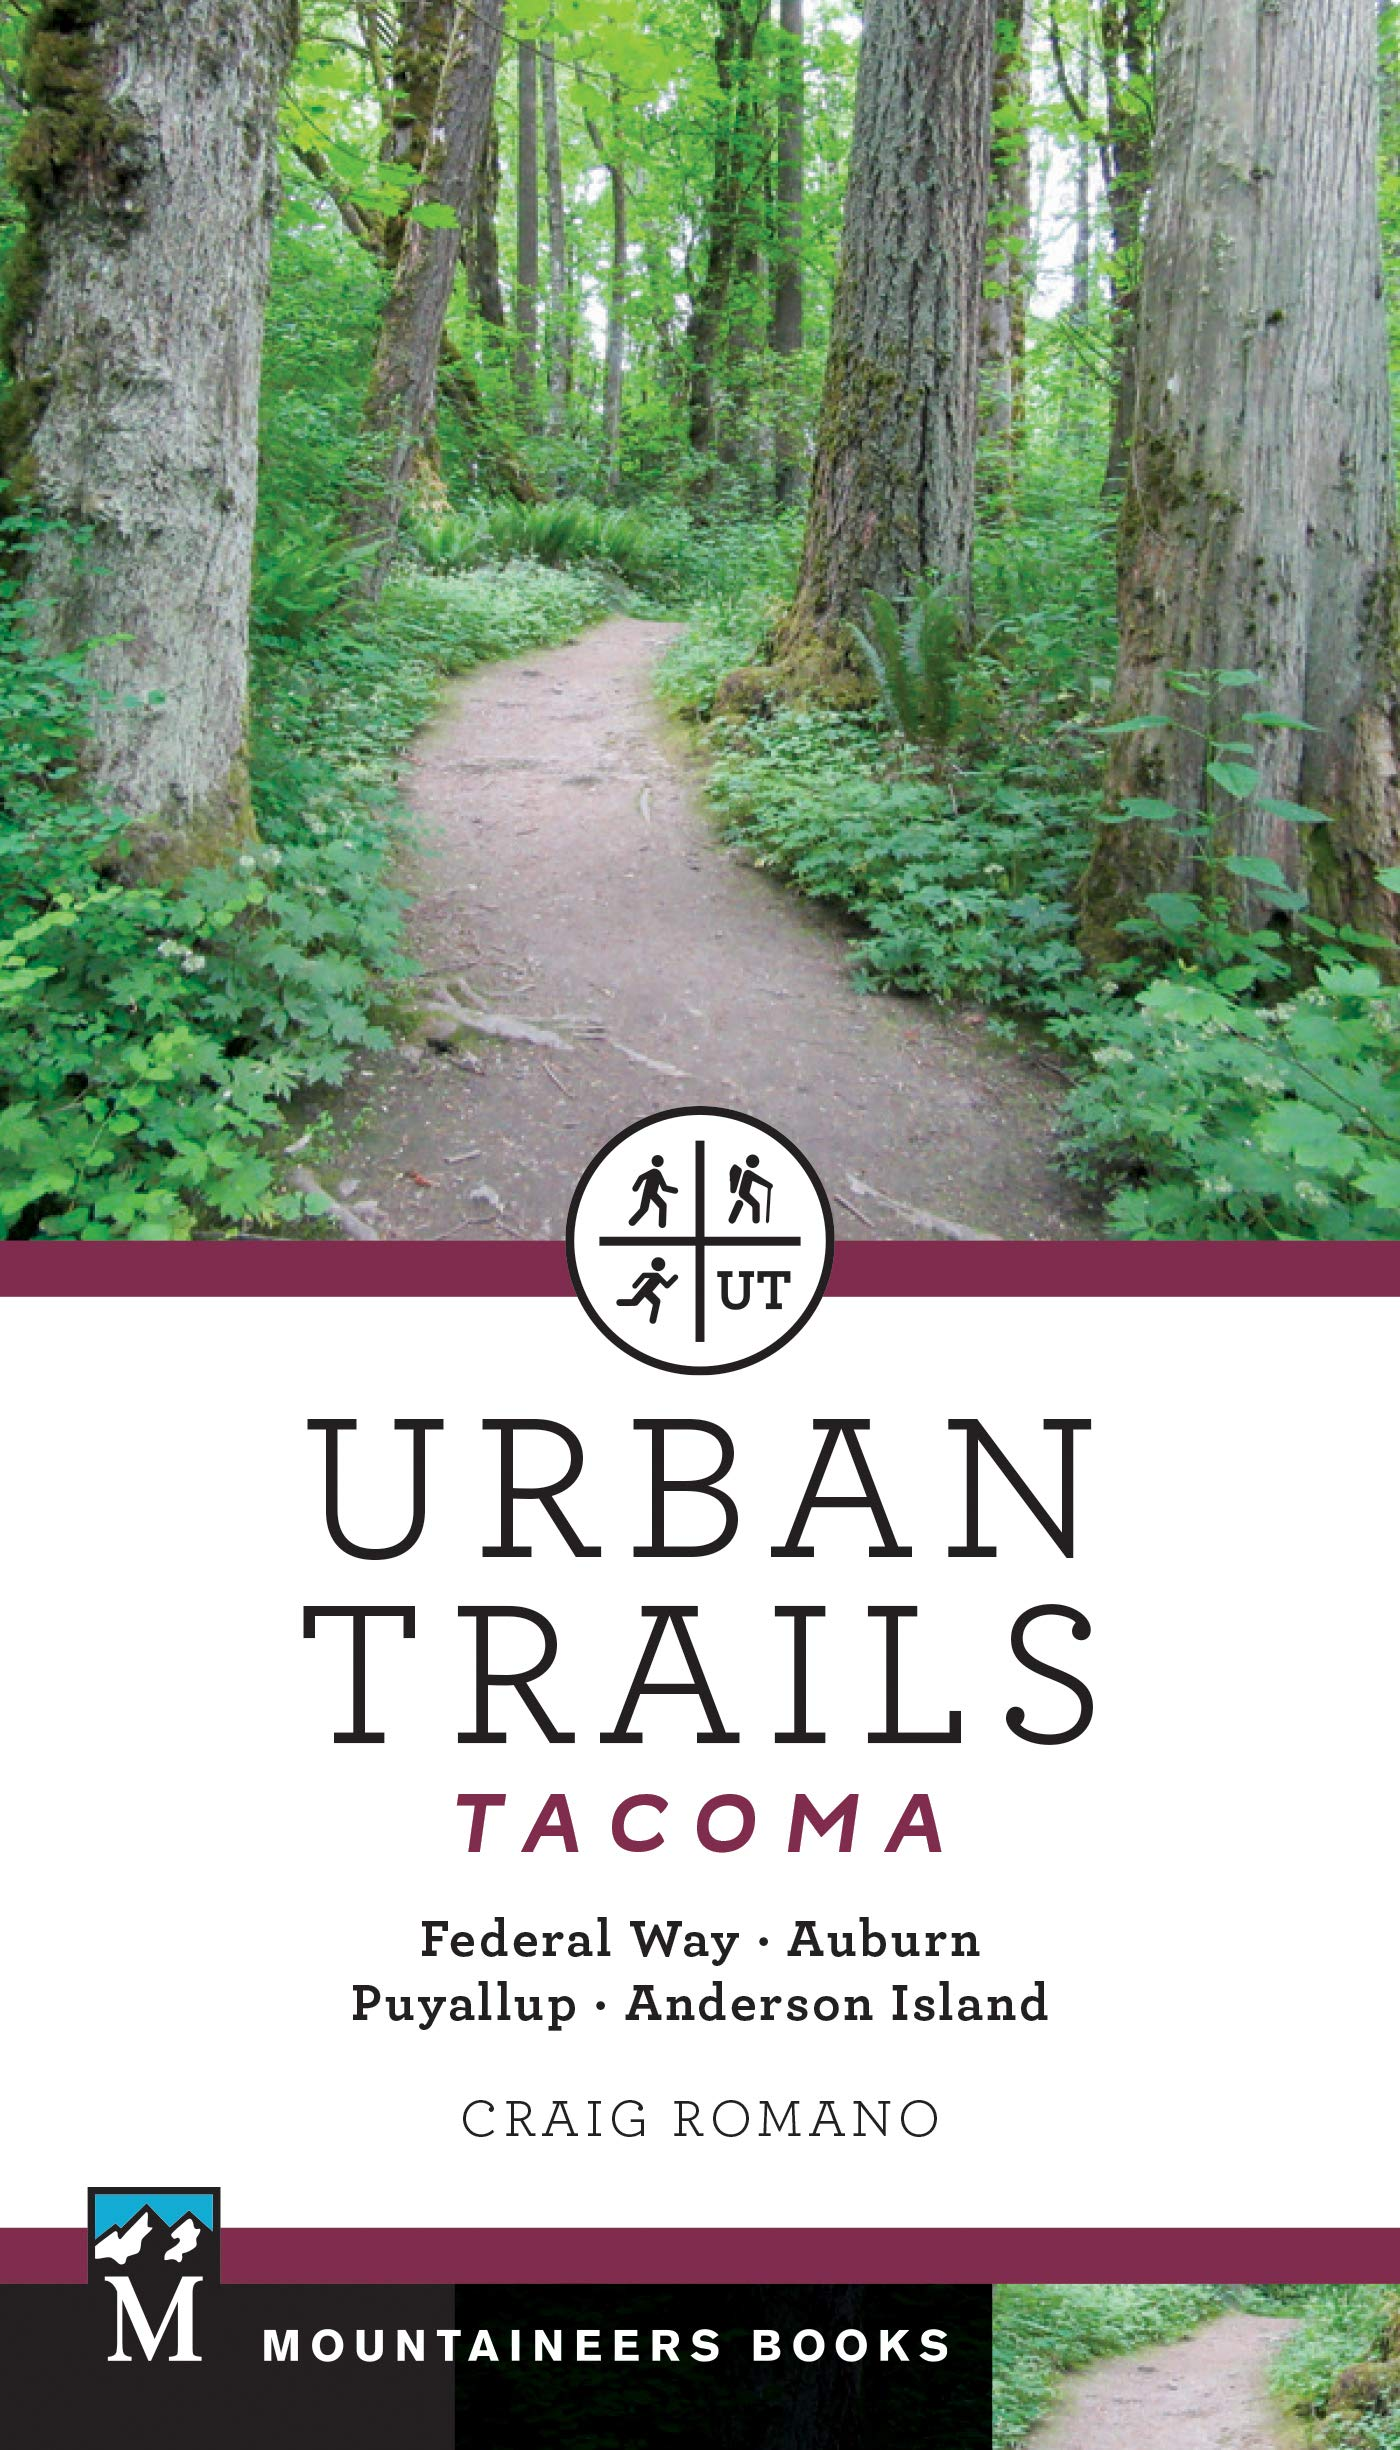 Urban Trails Tacoma